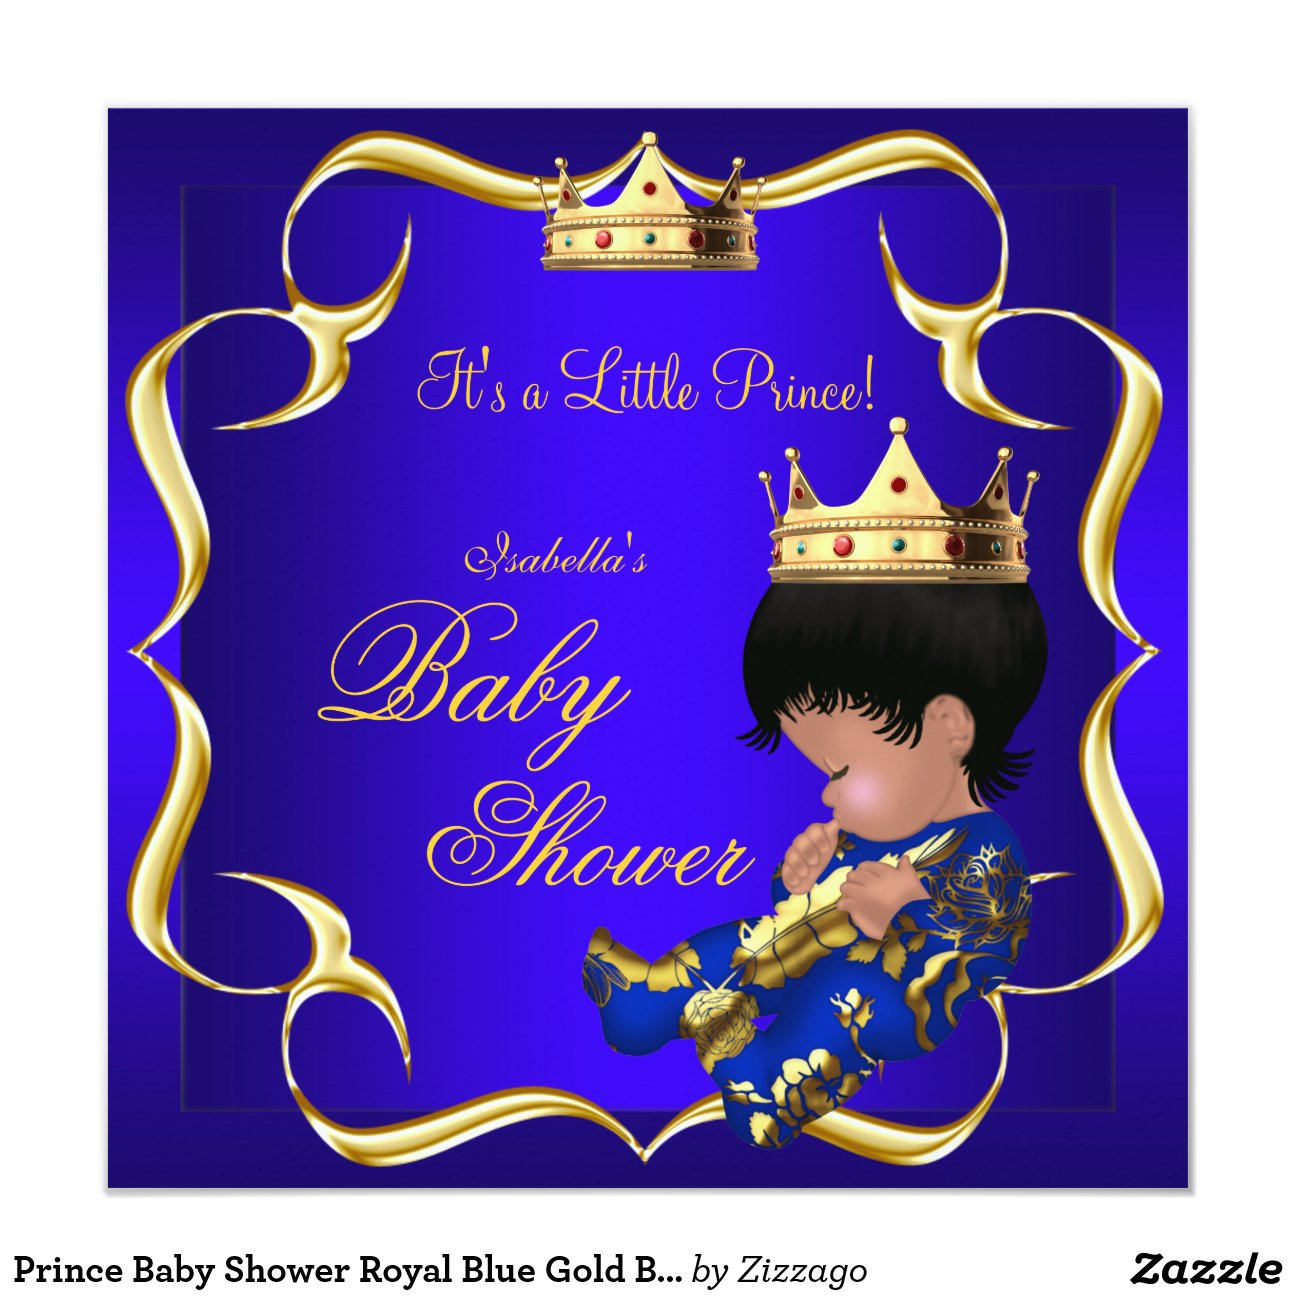 Baby Shower Invitations Prince Crown is best invitations design